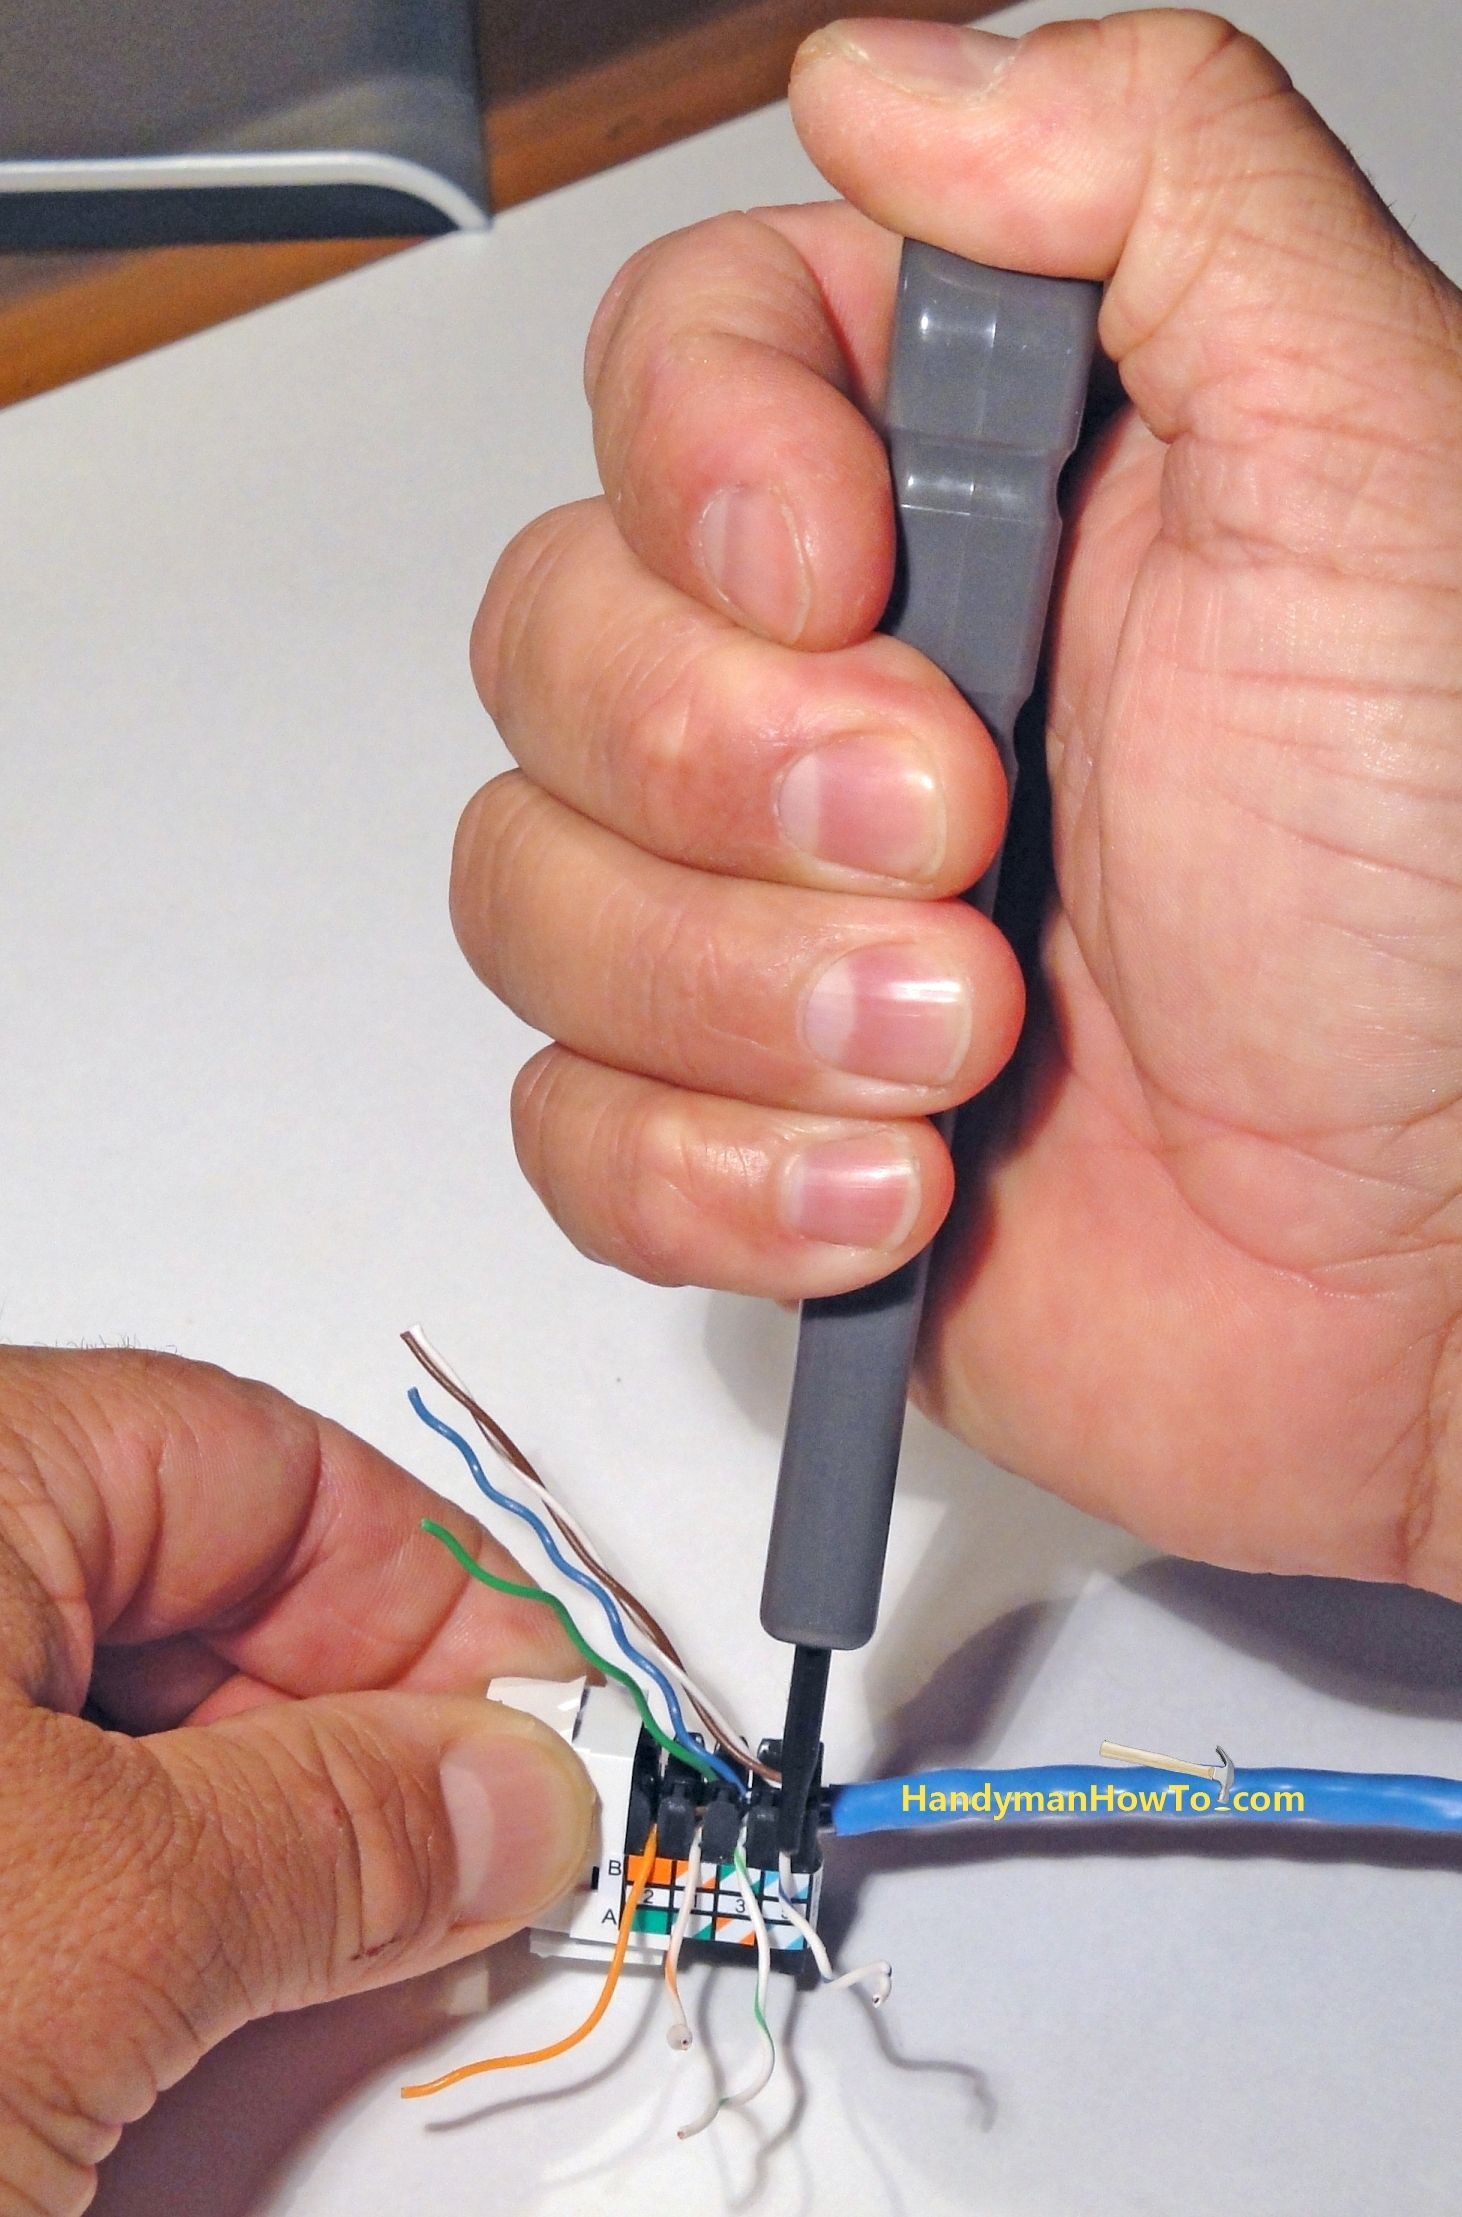 How to Install an Jack for a Home Network Home